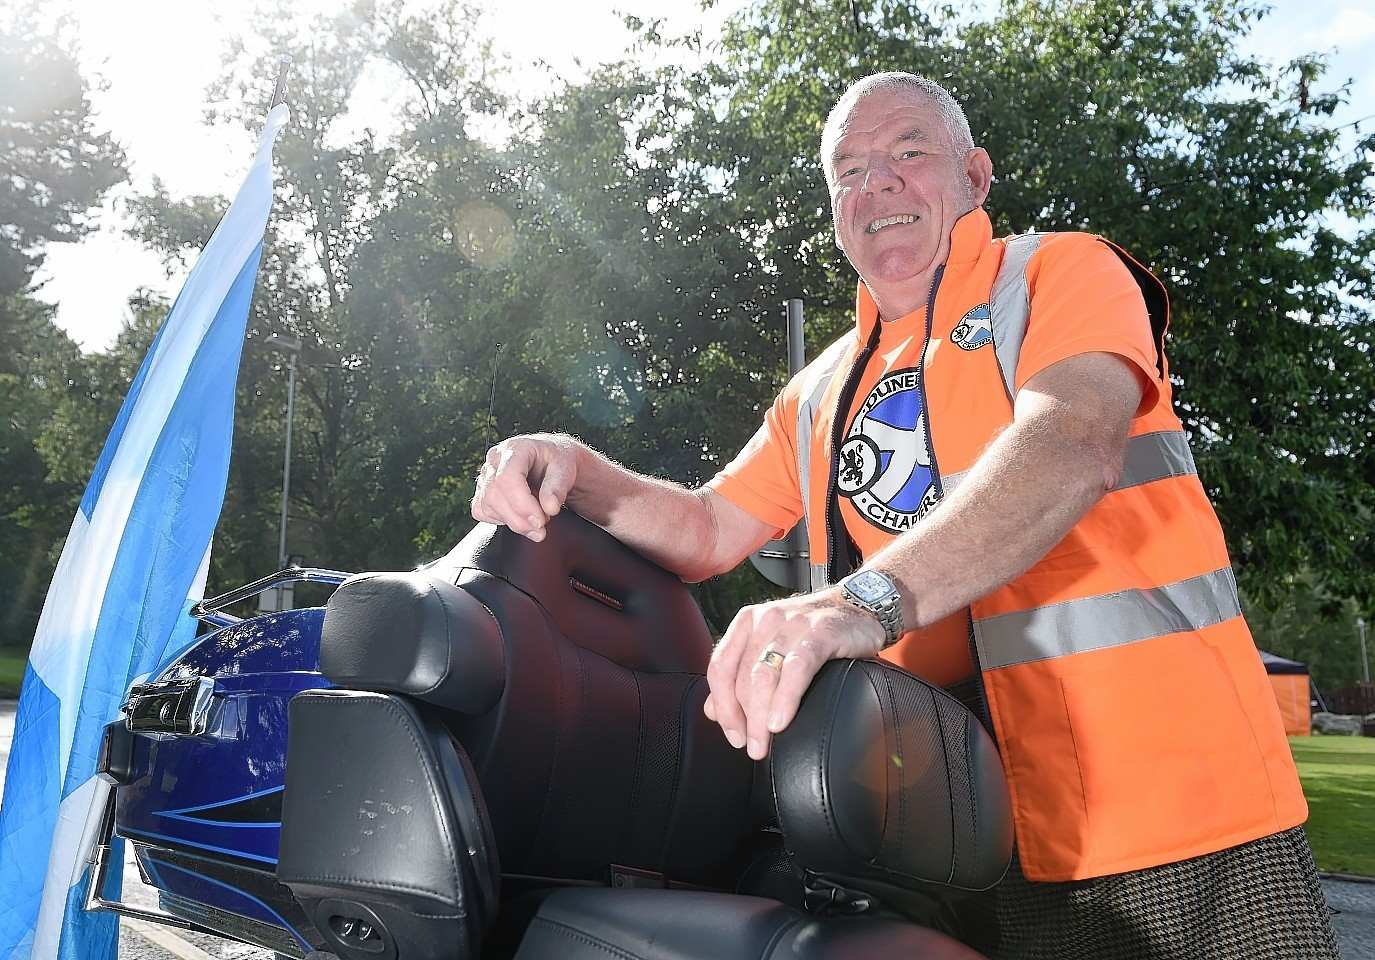 Thunder in the Glens returns to Aviemore. Rally co-ordinator George McGuire as the event gets under way.